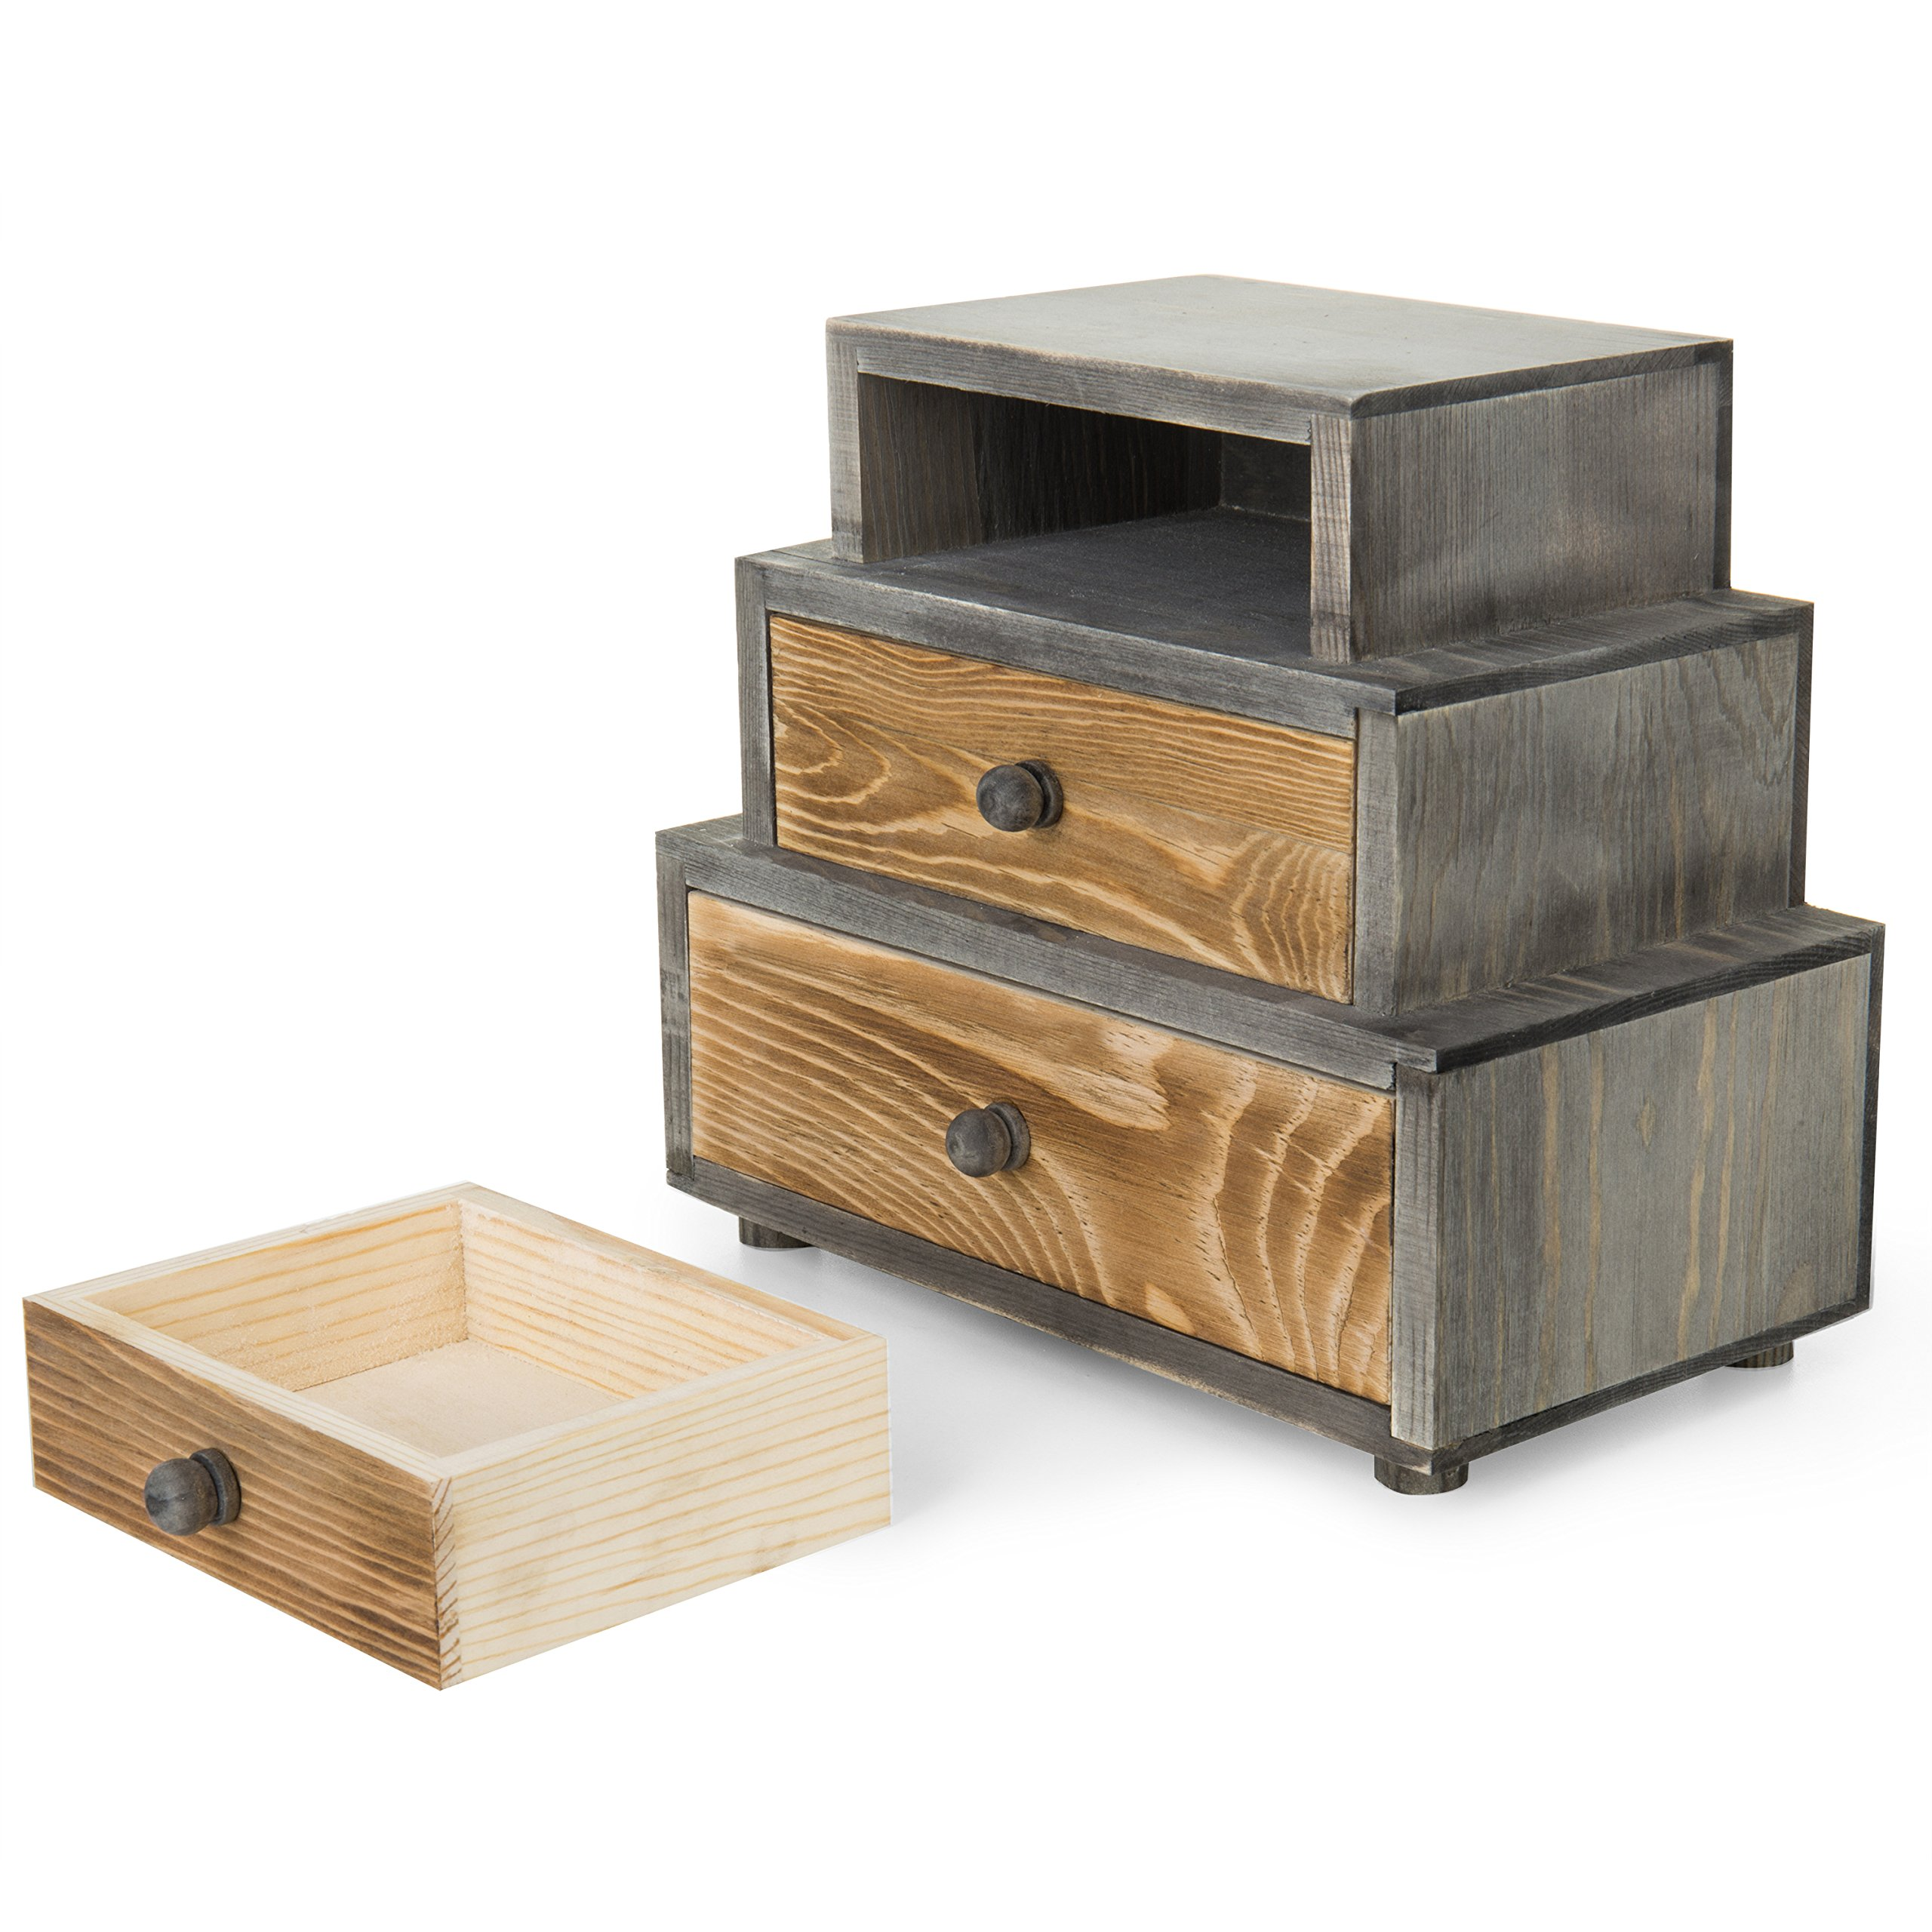 MyGift 3-Drawer Rustic Wood Office Storage Organizer by MyGift (Image #6)